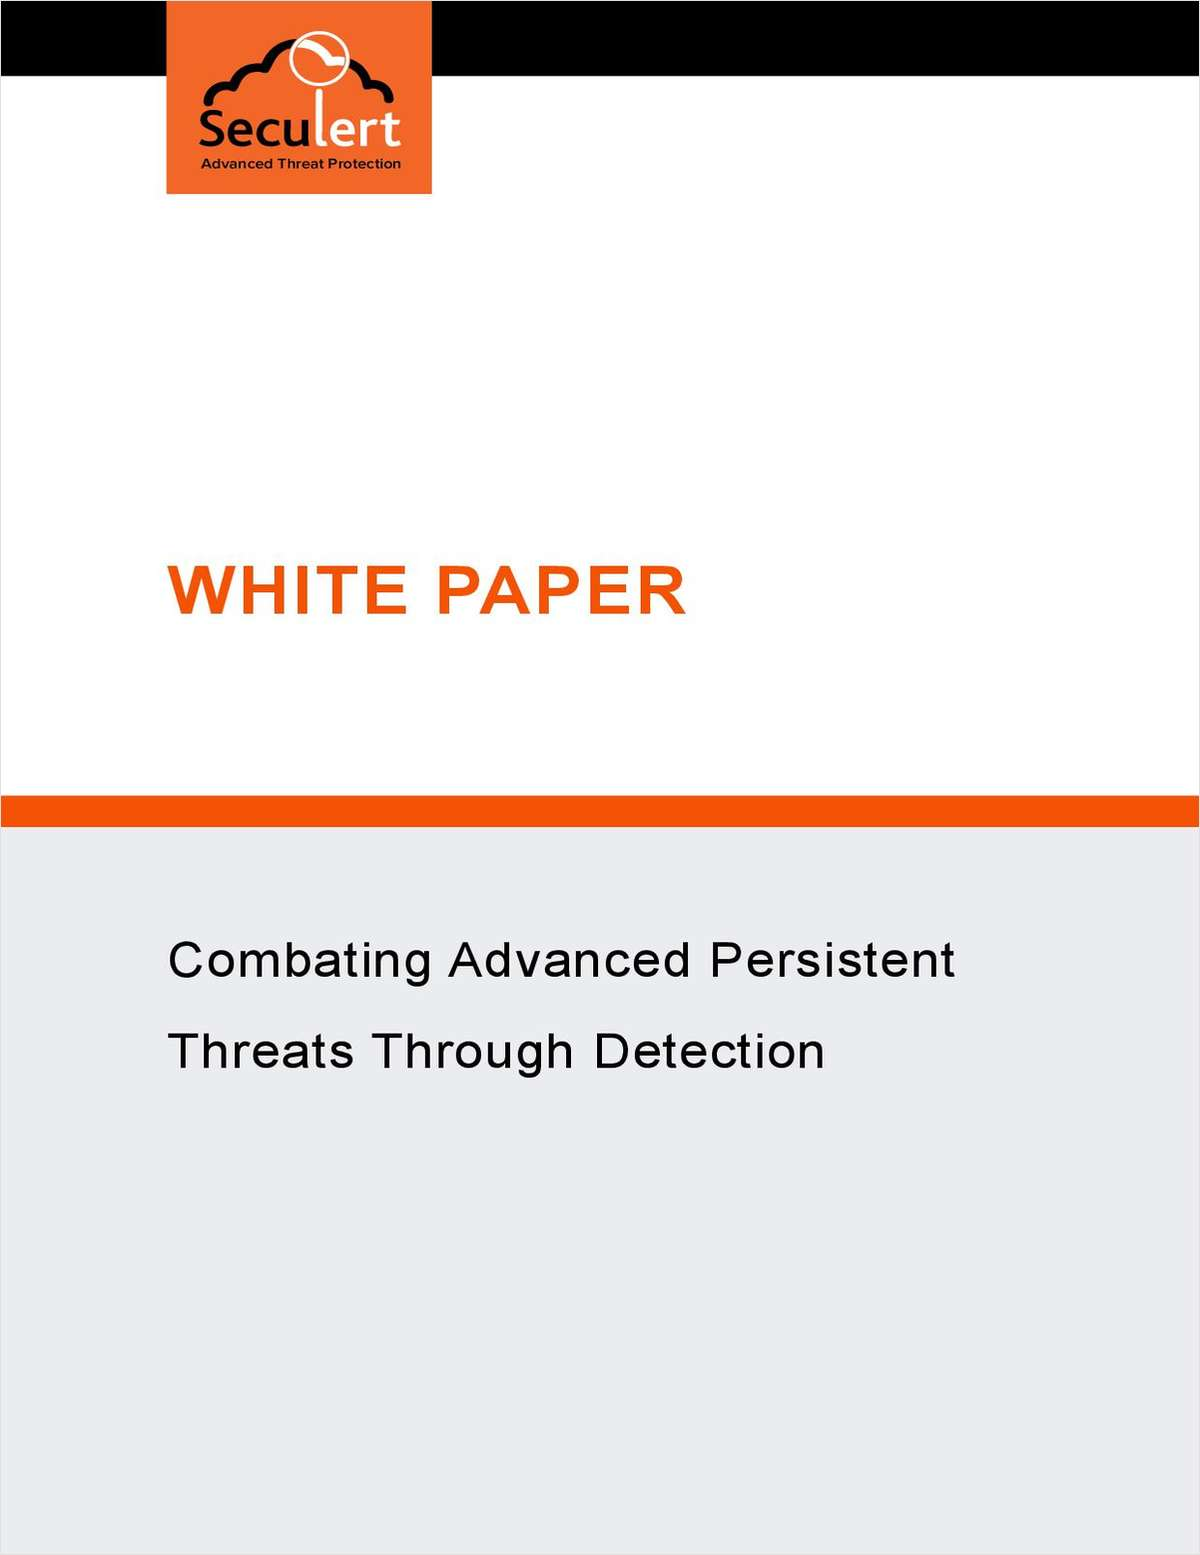 Combating Advanced Persistent Threats through Detection